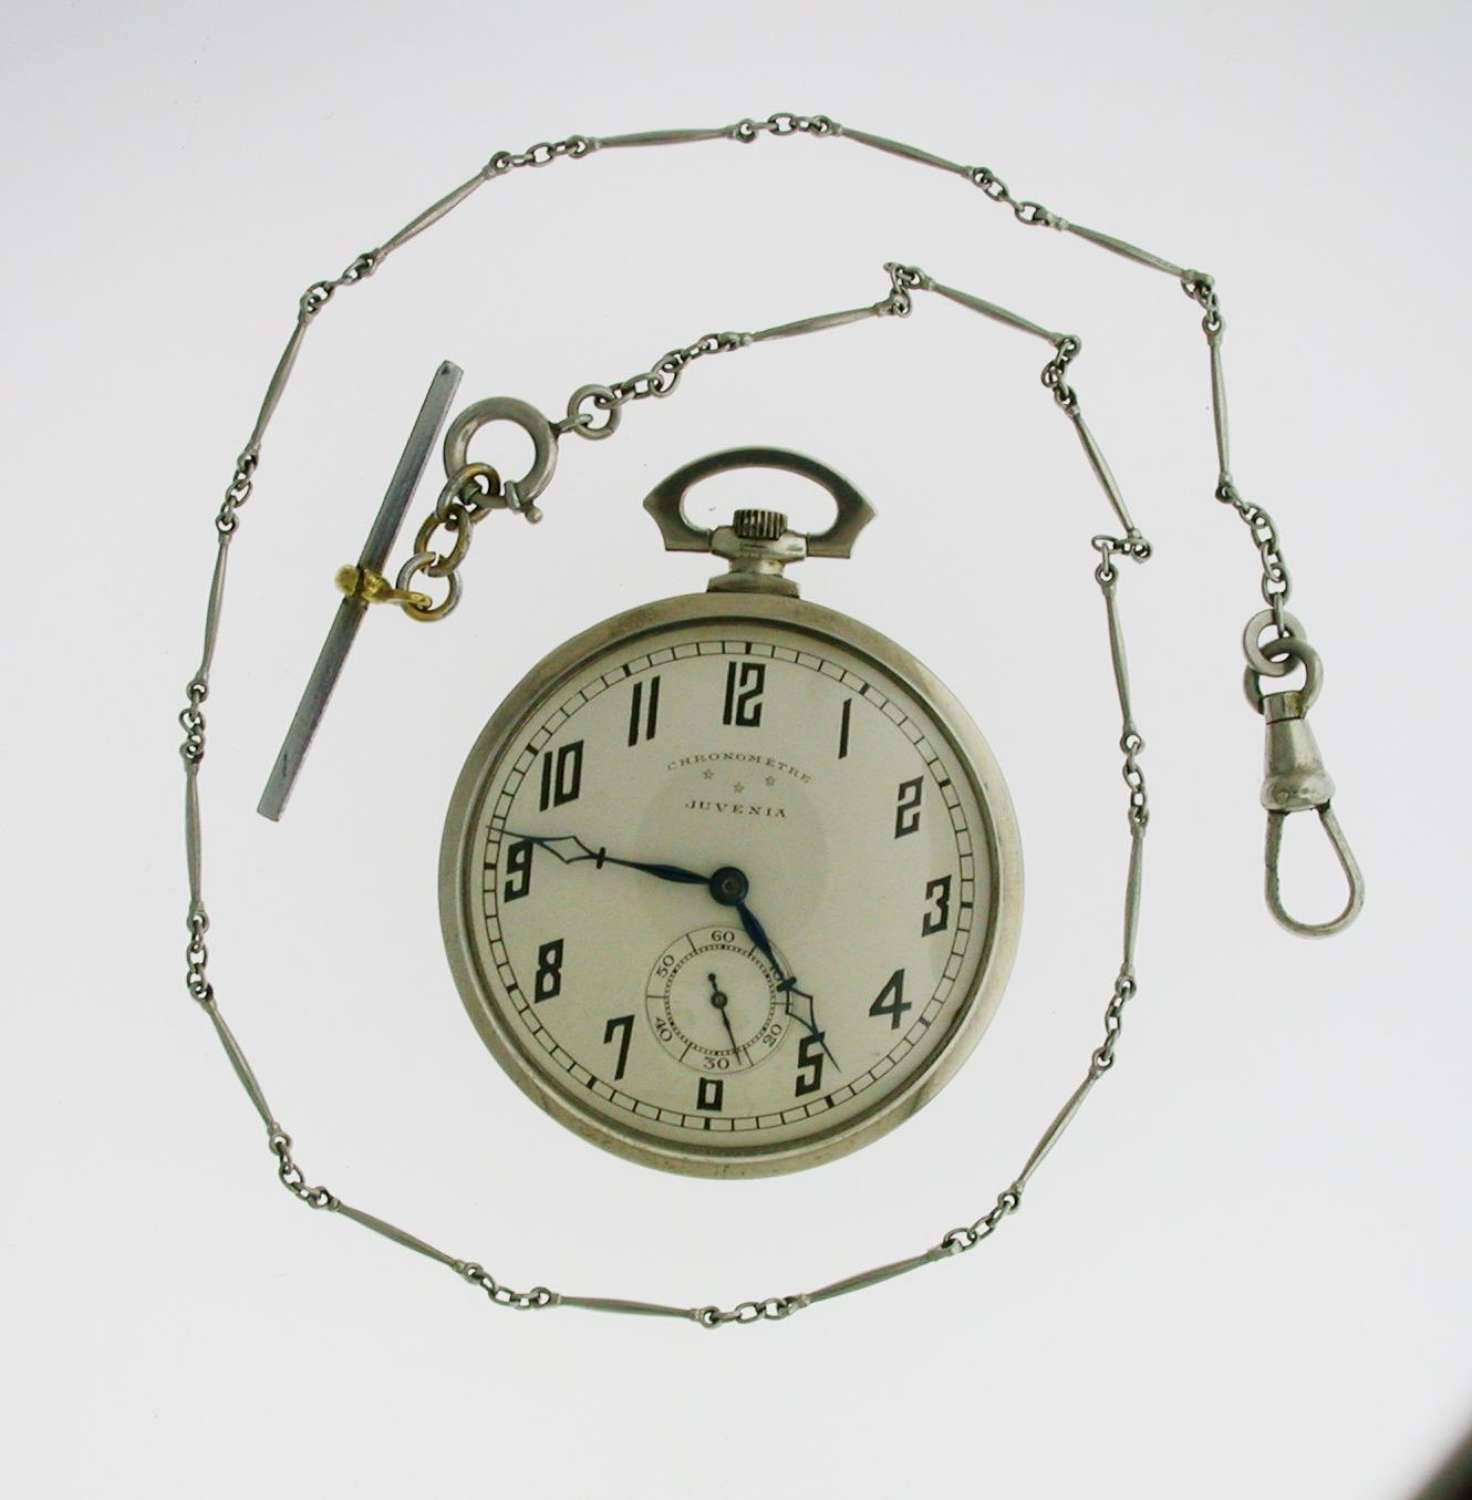 Juvenia Art Deco Nickel Plated Open Face Pocket Watch with Chain Swiss